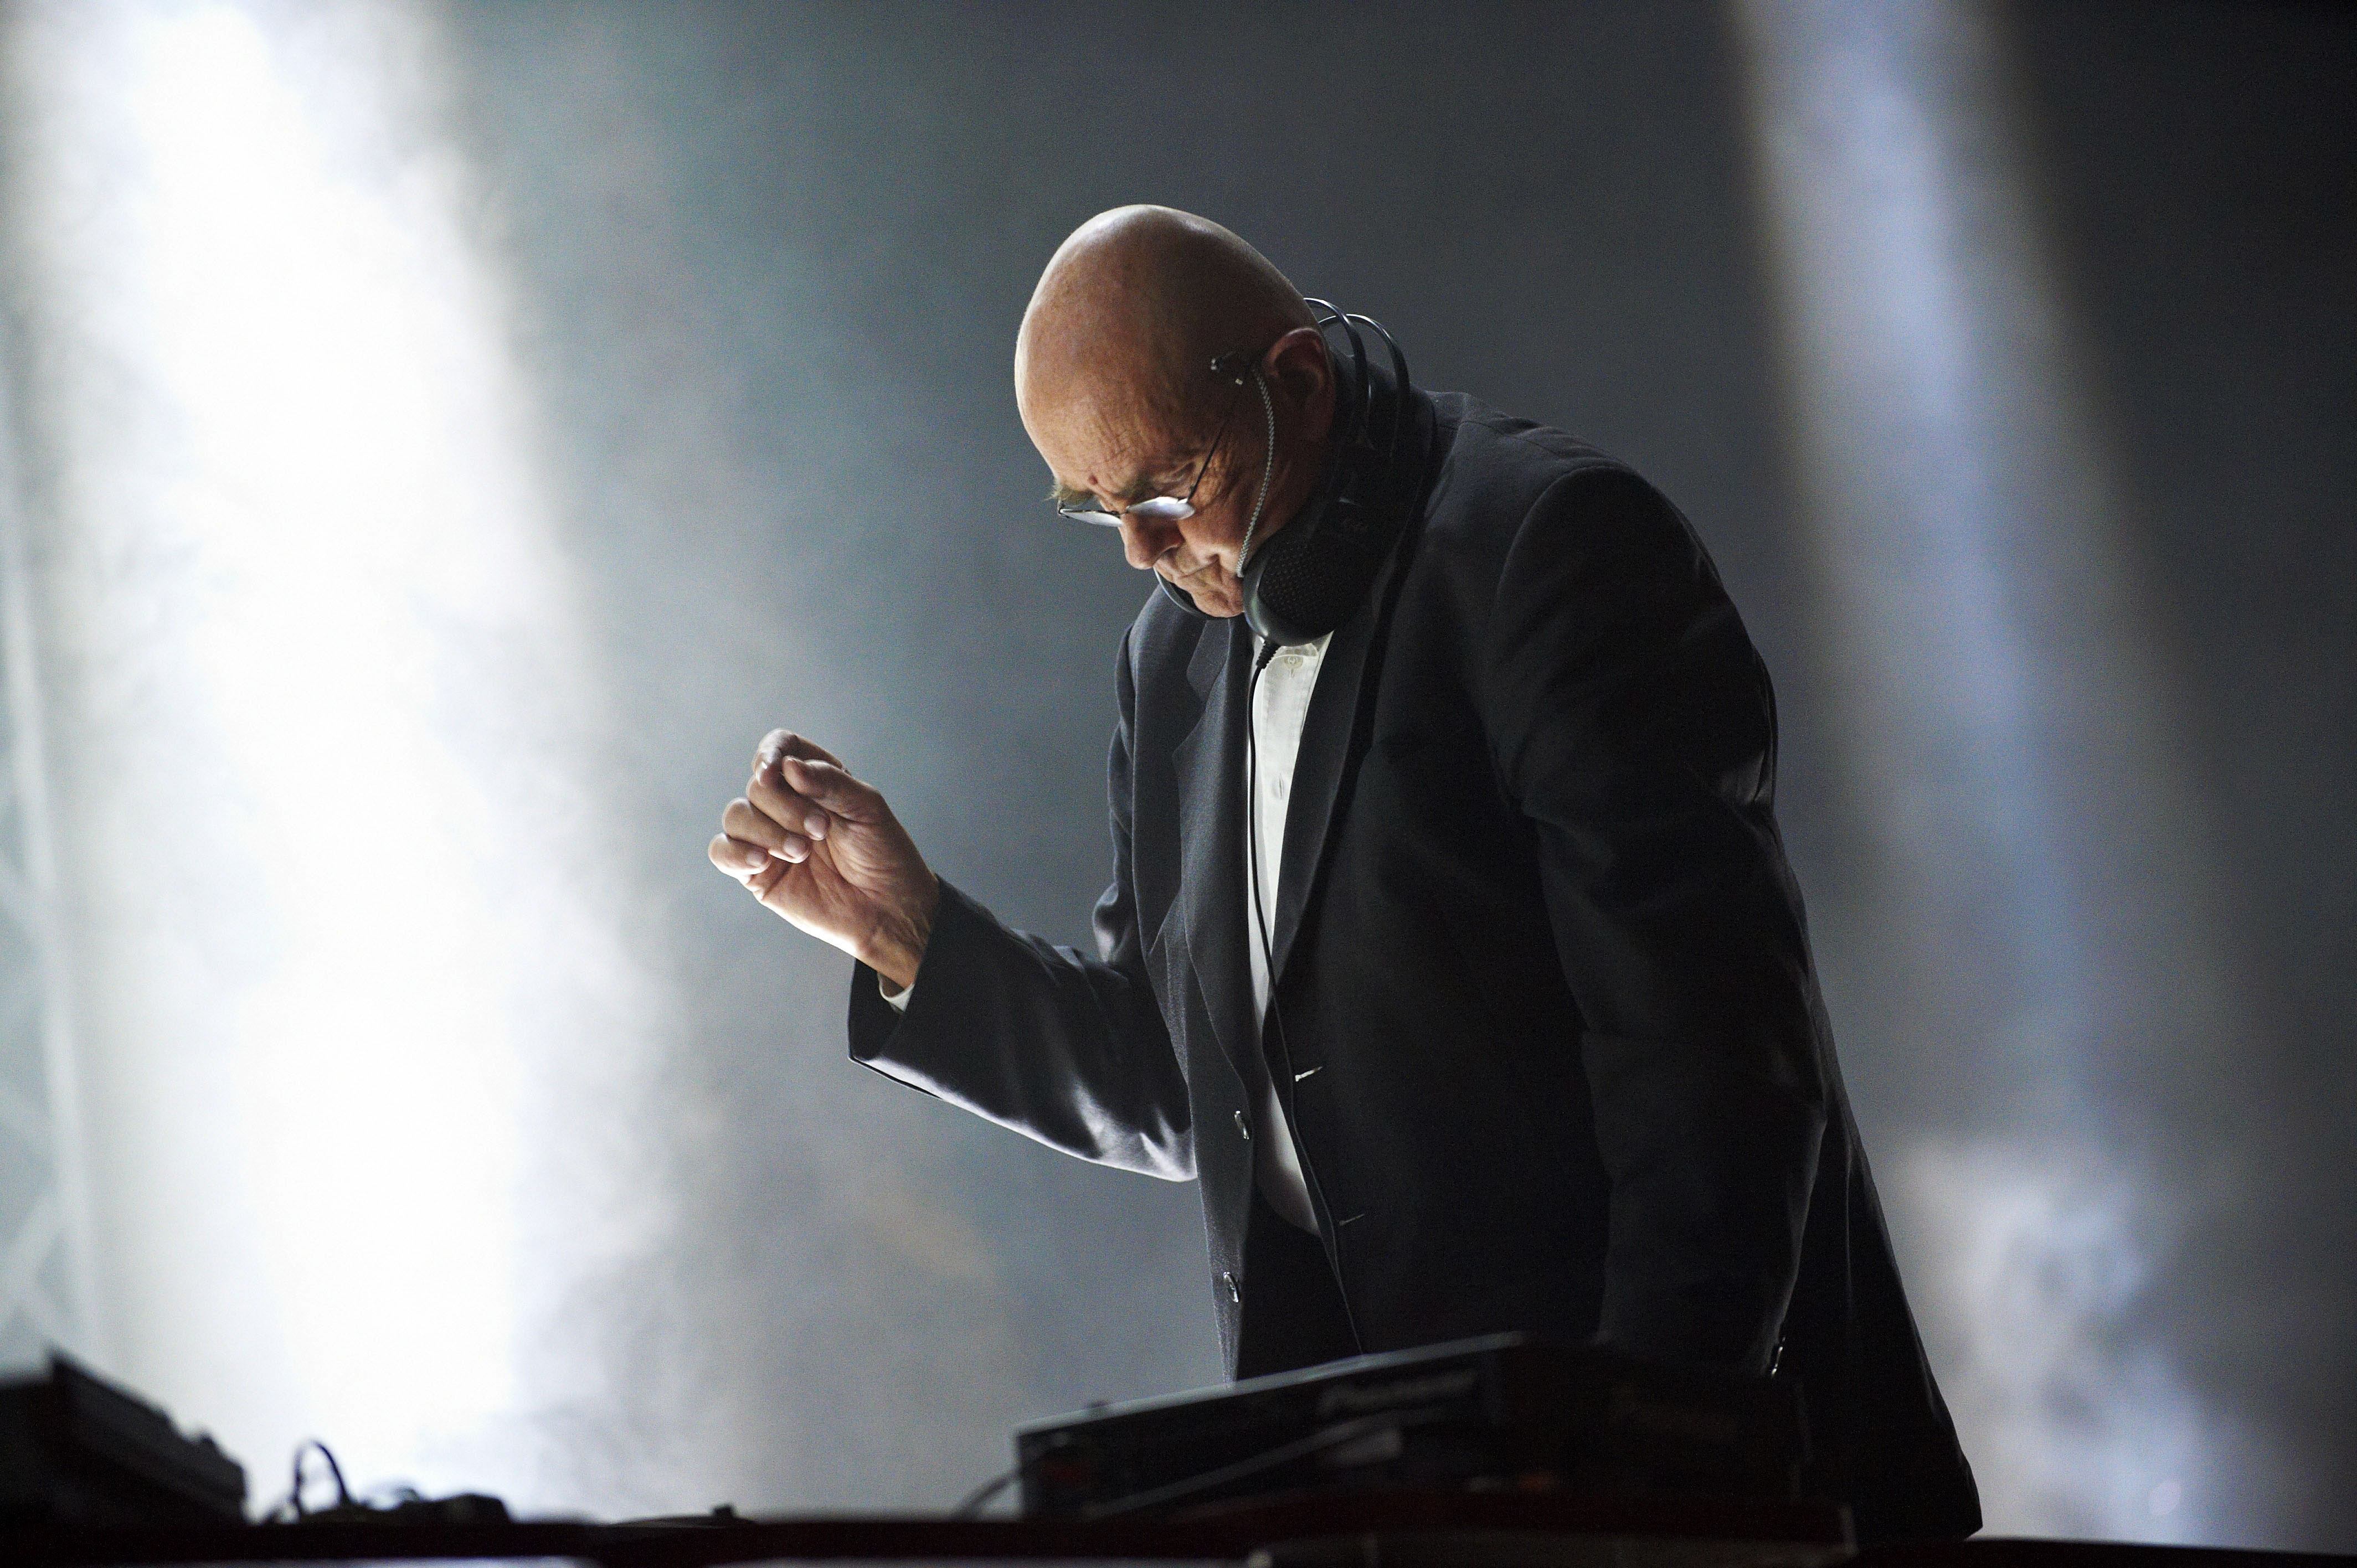 MINEHEAD, UNITED KINGDOM - DECEMBER 05: Hans-Joachim Roedelius of Cluster performs on stage during the final day of ATP Night